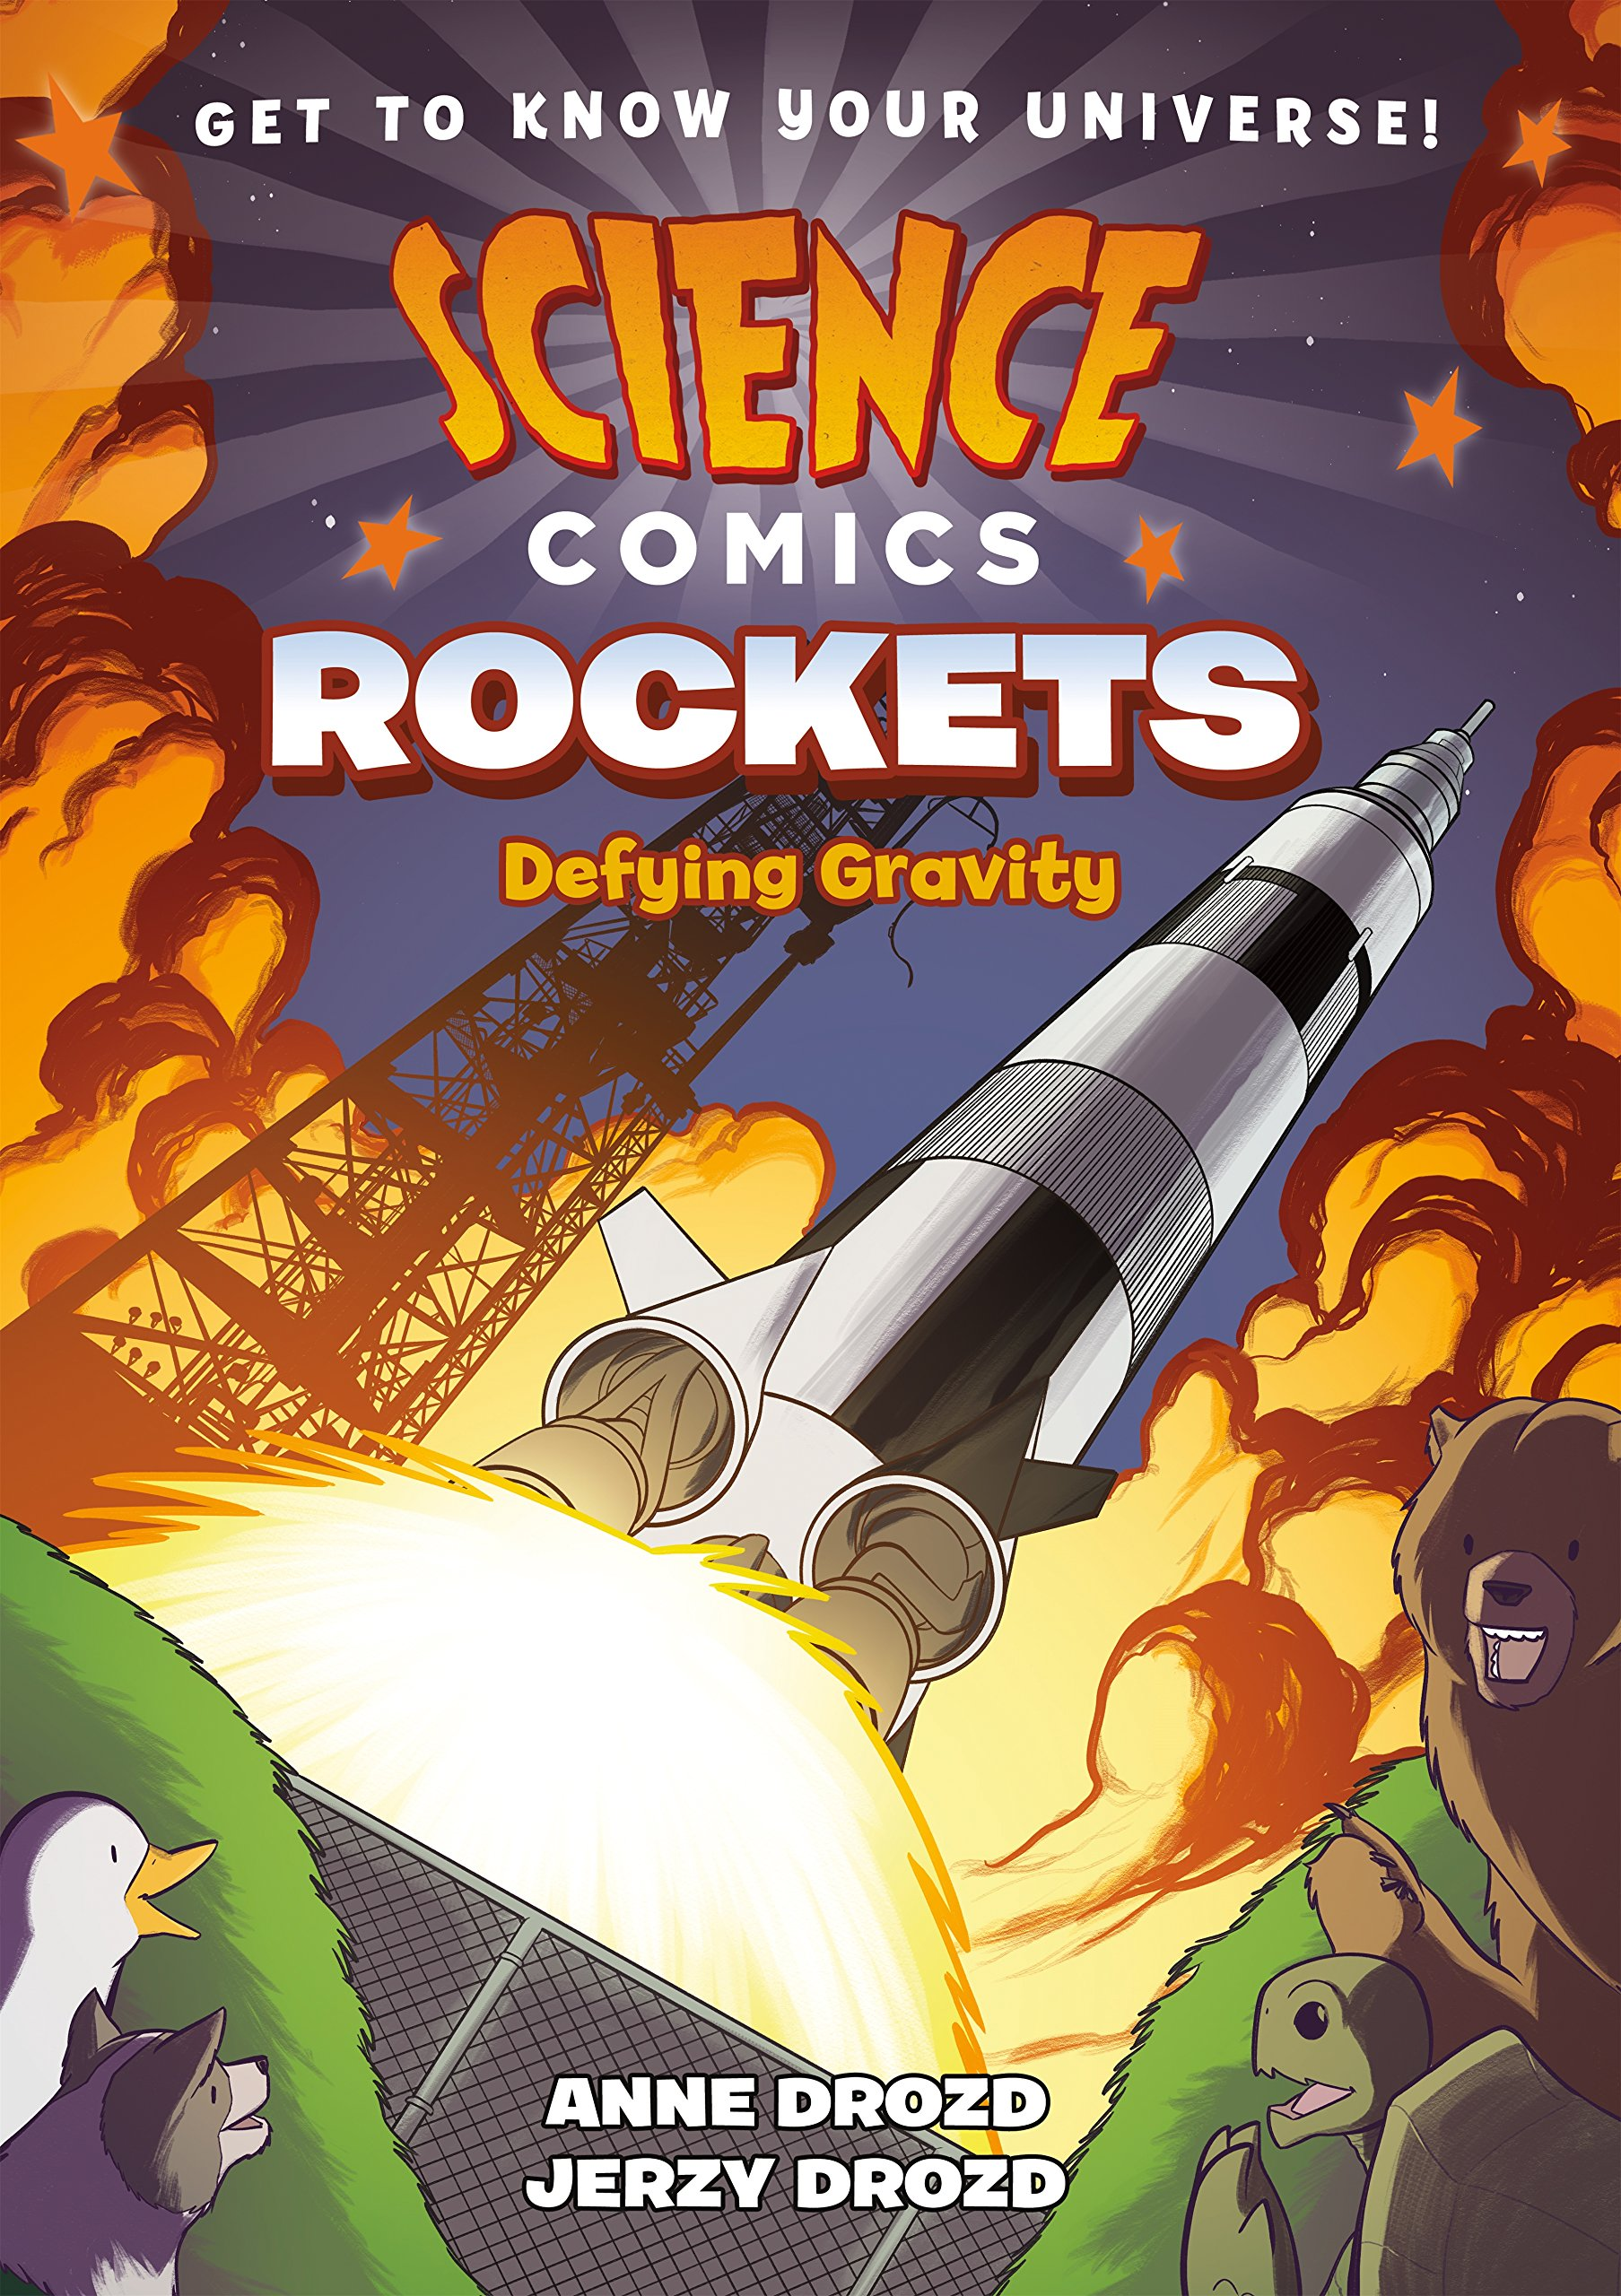 Flatting     Every volume of Science Comics  offers a complete introduction to a particular topic—dinosaurs, coral reefs, the solar system, volcanoes, bats, flying machines, and many more. These gorgeously illustrated graphic novels offer wildly entertaining views of their subjects. Whether you're a fourth grader doing a natural science unit at school or a thirty-year-old with a secret passion for airplanes, these books are for you!  This volume: In  Rockets  we explore the 2,000 years that rockets have been in existence. We dive into Newton's Laws of Motion—learning all about gravity, force, acceleration, and the history of rockets made in the past and rockets to be made in the future!